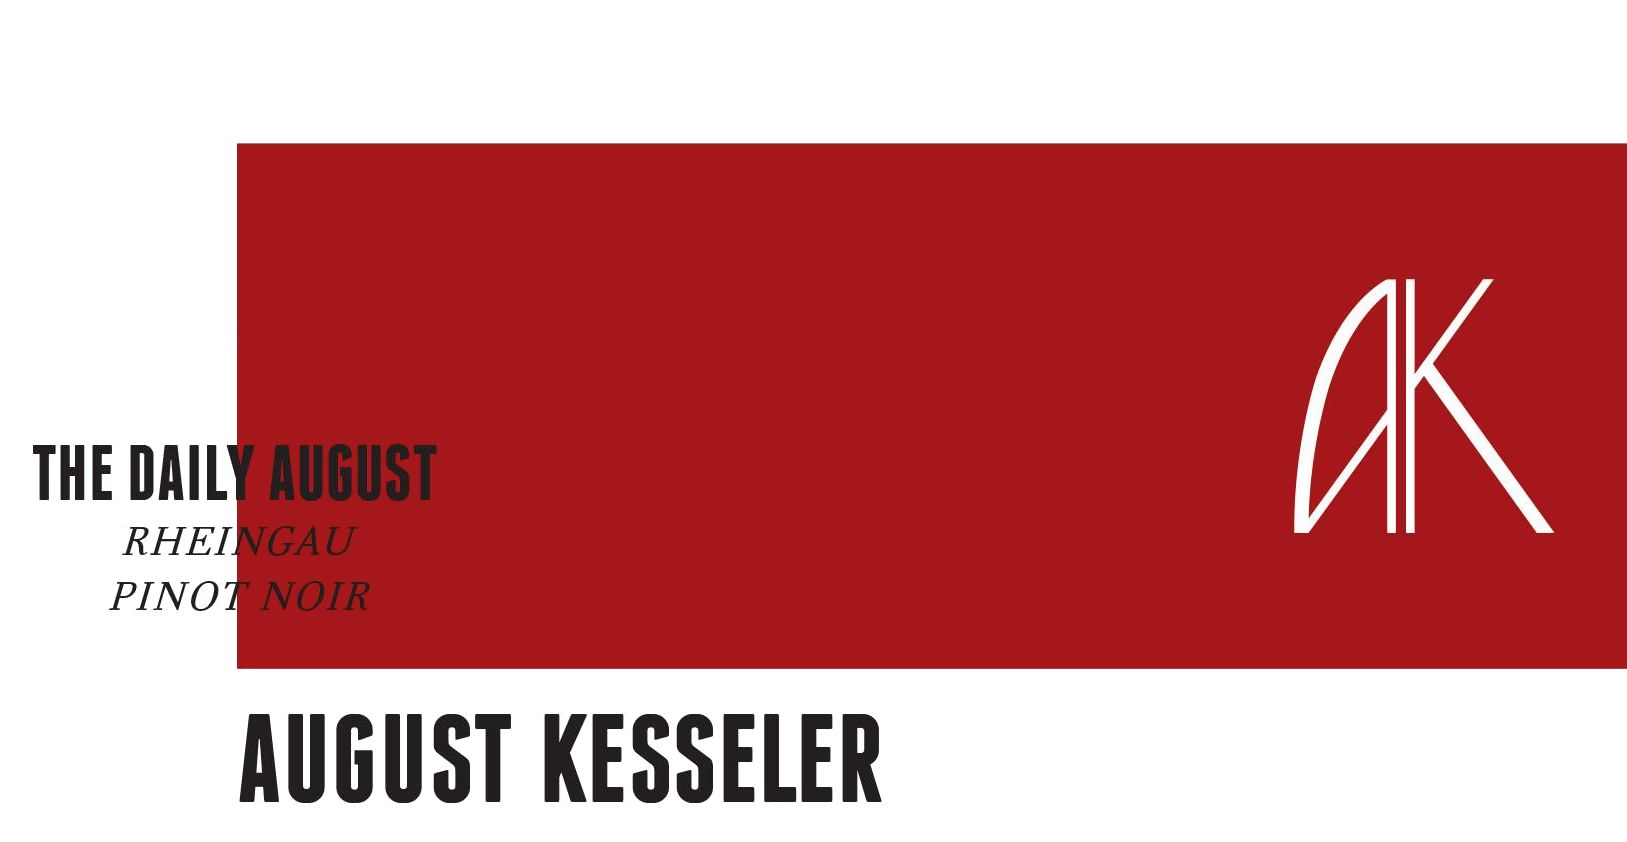 August Kesseler The Daily August Trocken Pinot Noir 2016  Front Label